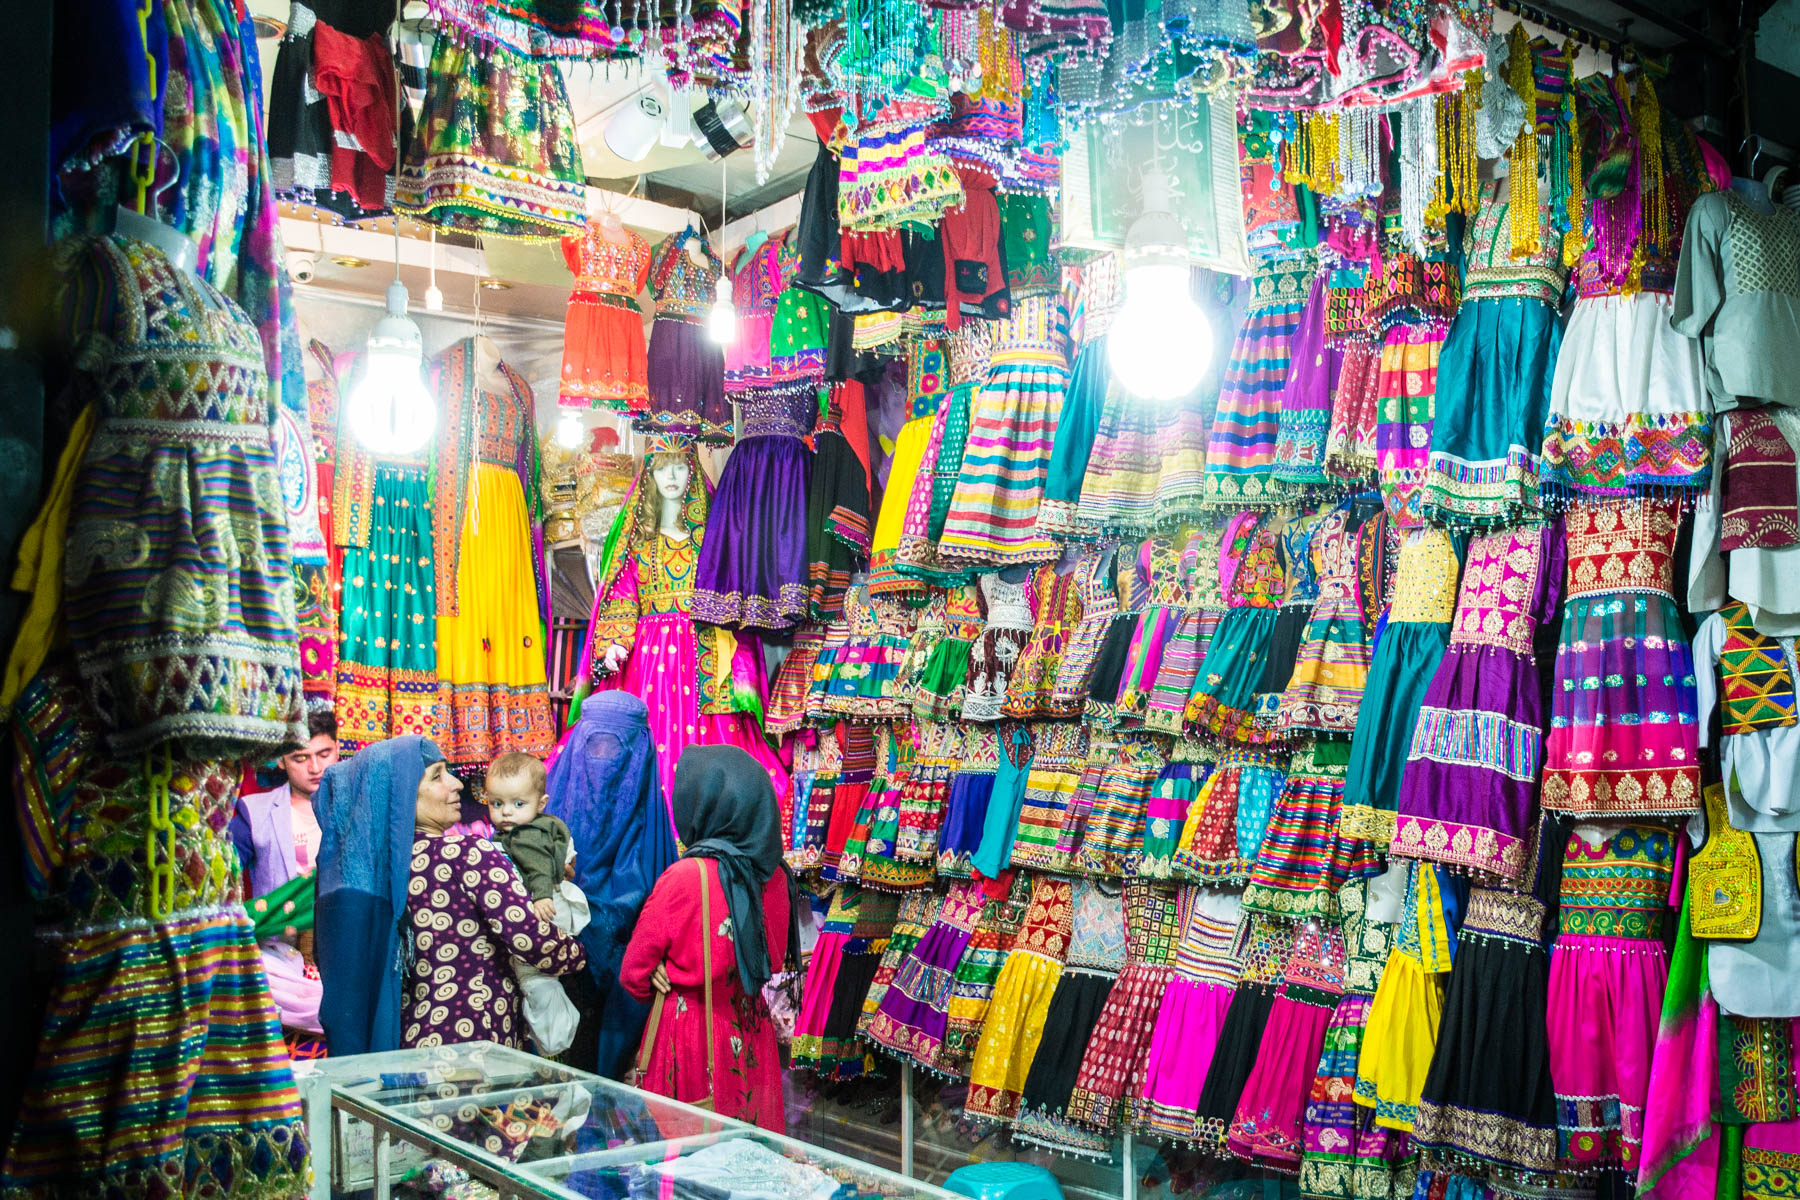 Women in burqas shopping in Mazar-i-Sharif, Afghanistan - Lost With Purpose